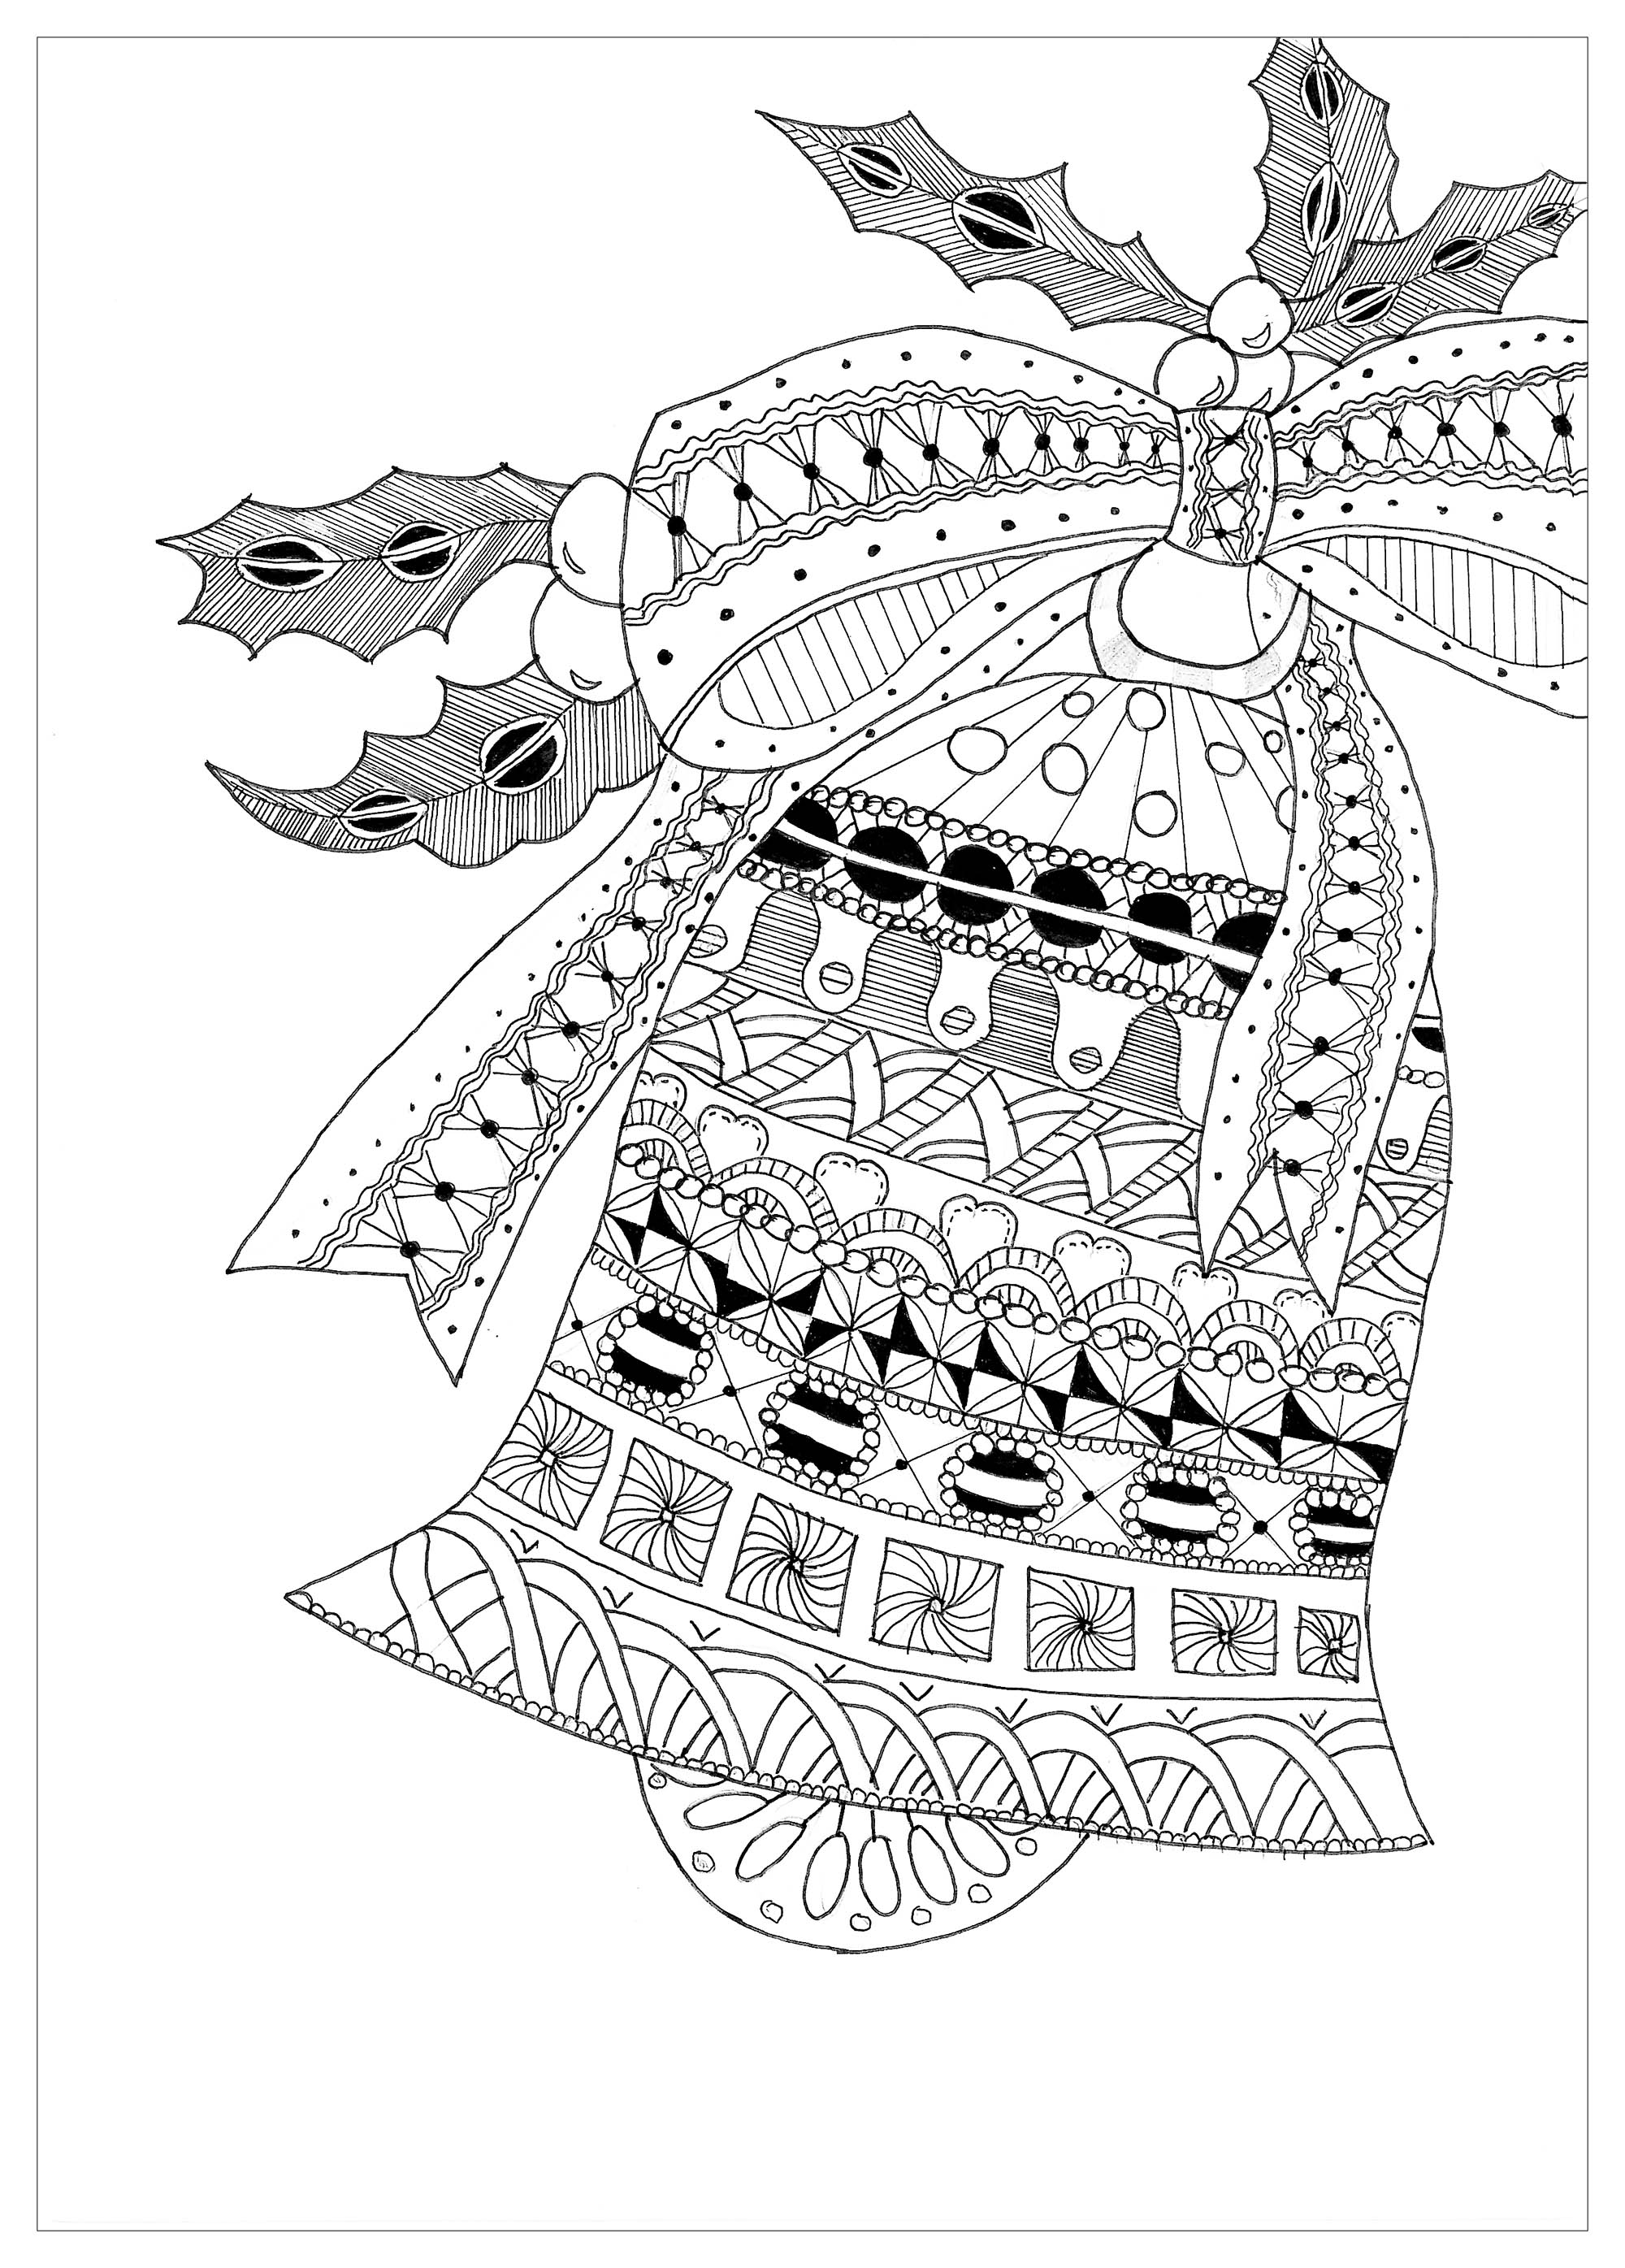 Zentangle Cloche Noel Noël Coloriages Difficiles Pour Adultes